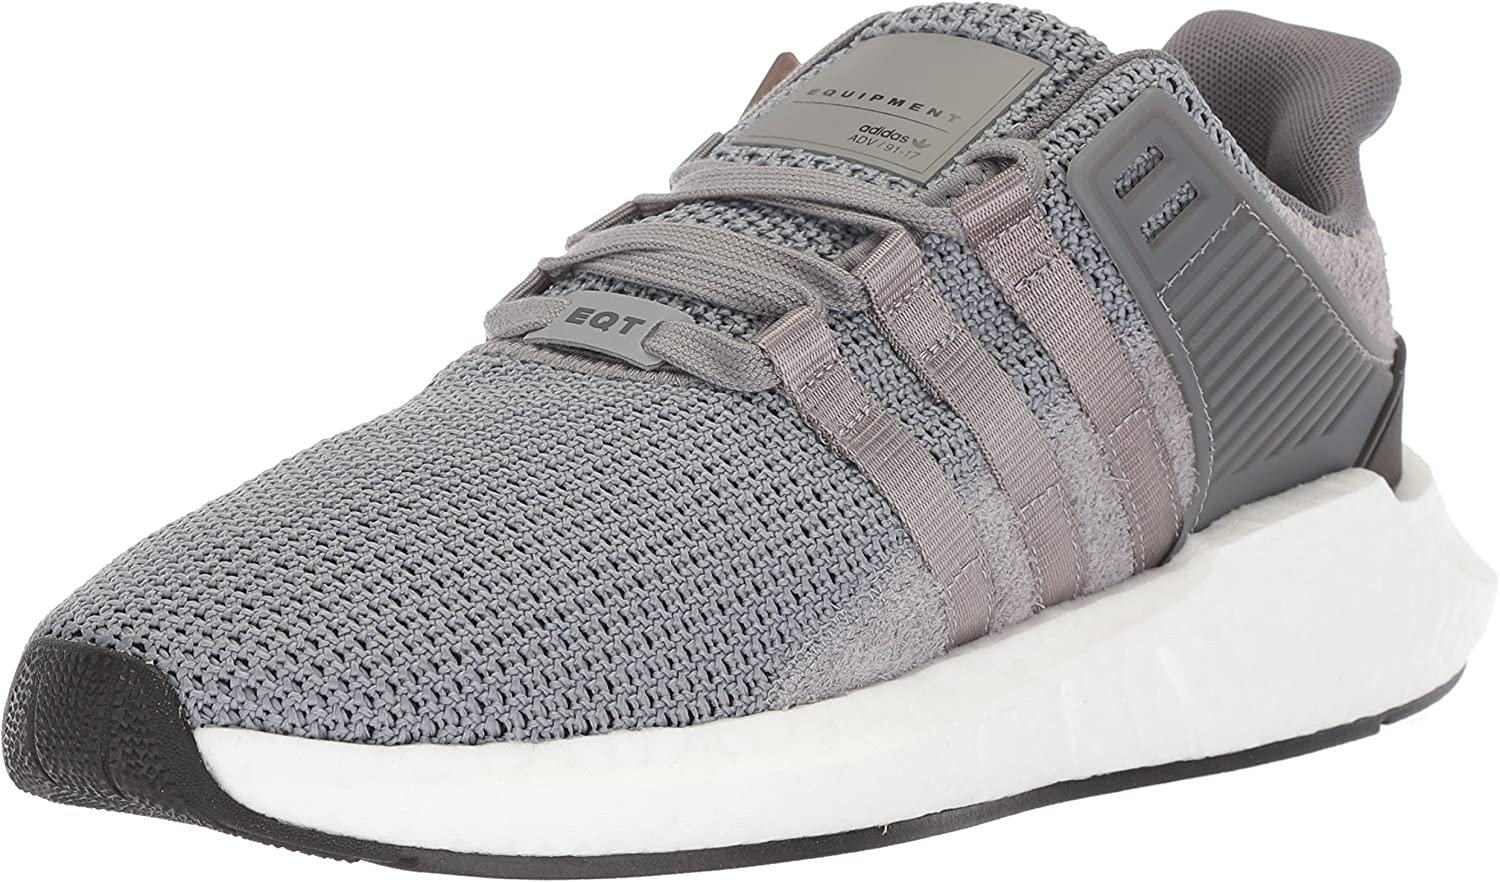 adidas Originals Men s EQT Support 93 17 Running Shoe, Grey Grey White, 8.5 M US